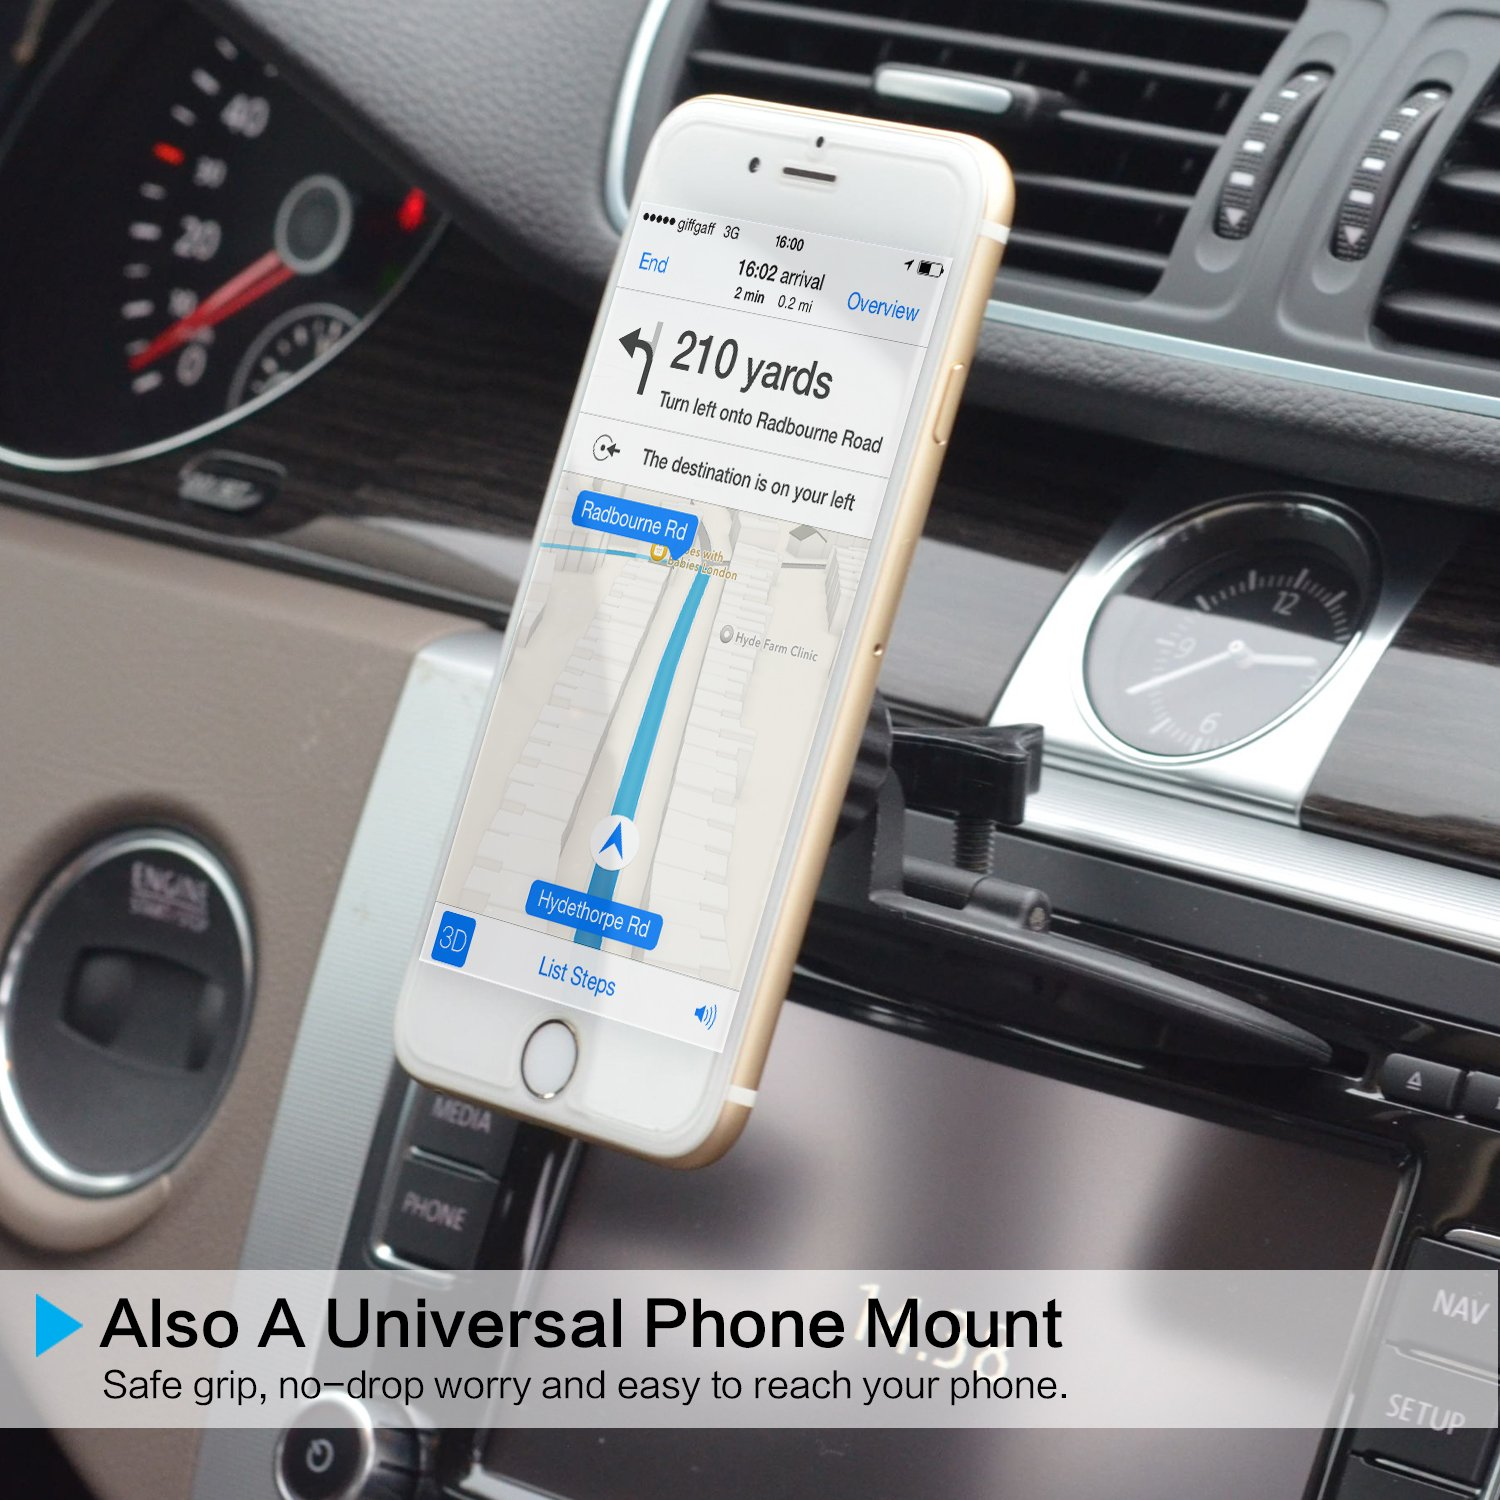 Universal Magnetic Car Mount 3 In 1 Cd Slot Tablet Ipad Mini Dash 2003 Chevy Silverado Compatible With 7 9 Inch Player Cell Phone Holder Tray Gps